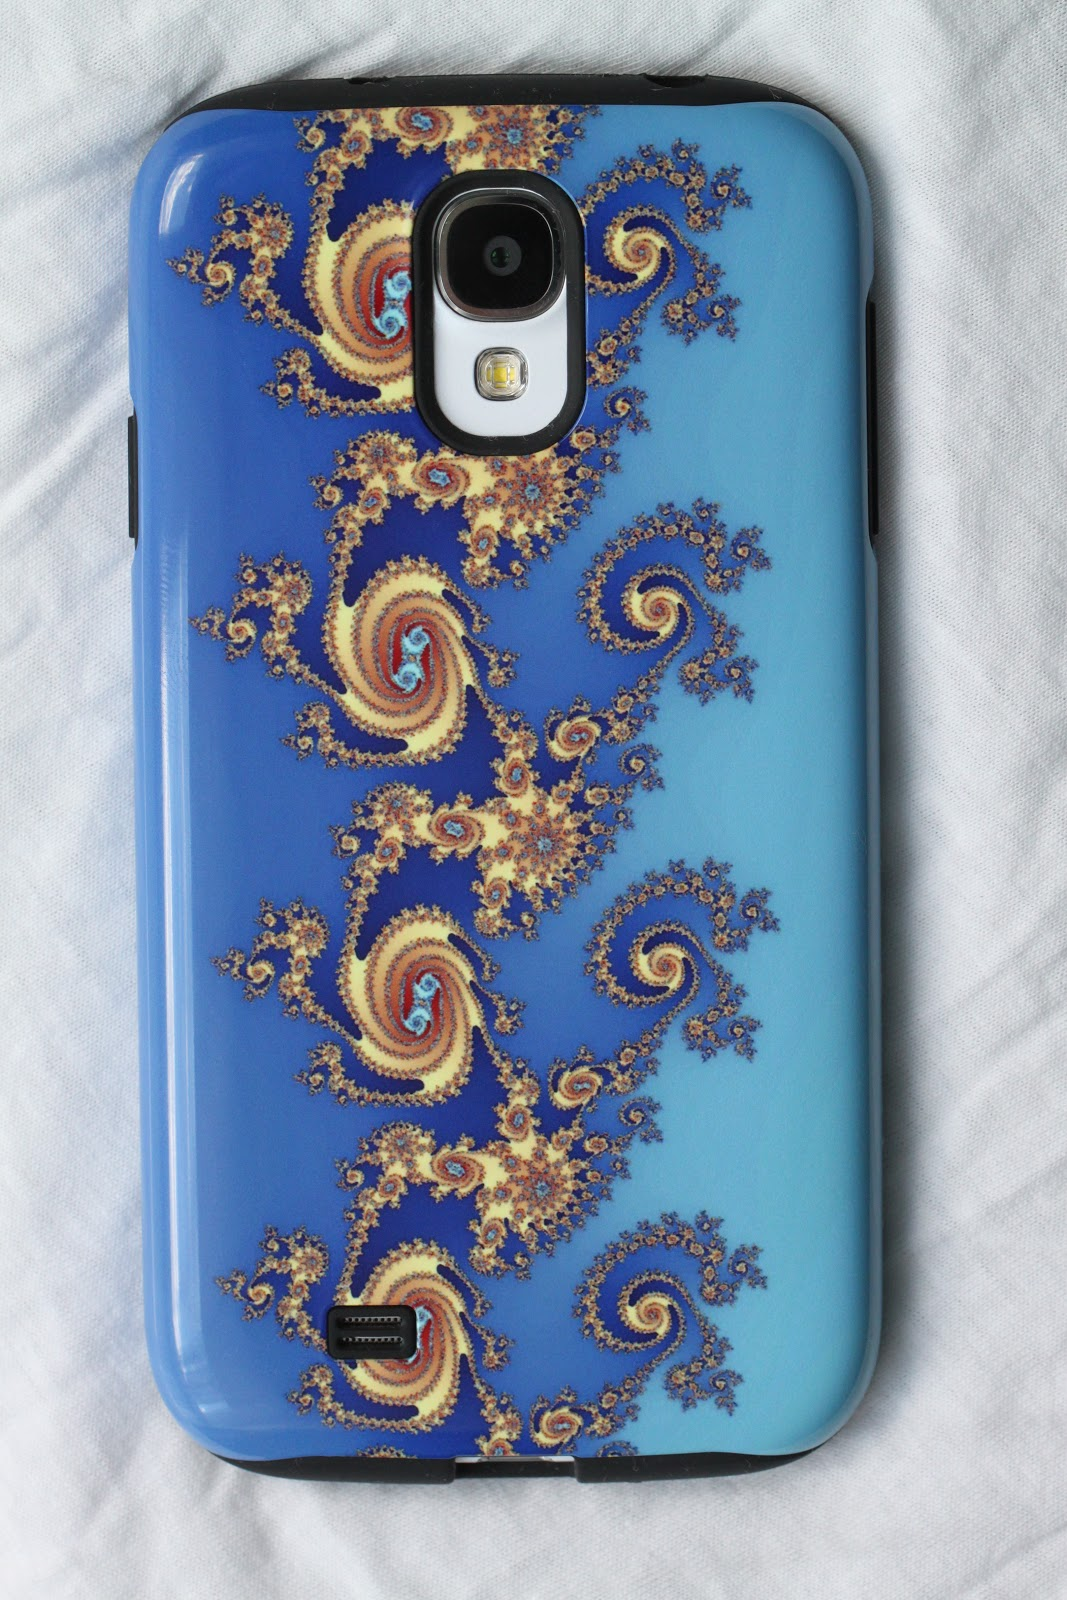 hot sale online f63a1 4eb26 Rick Lionheart Reviews: Review of the Redbubble Mobile Phone Cases